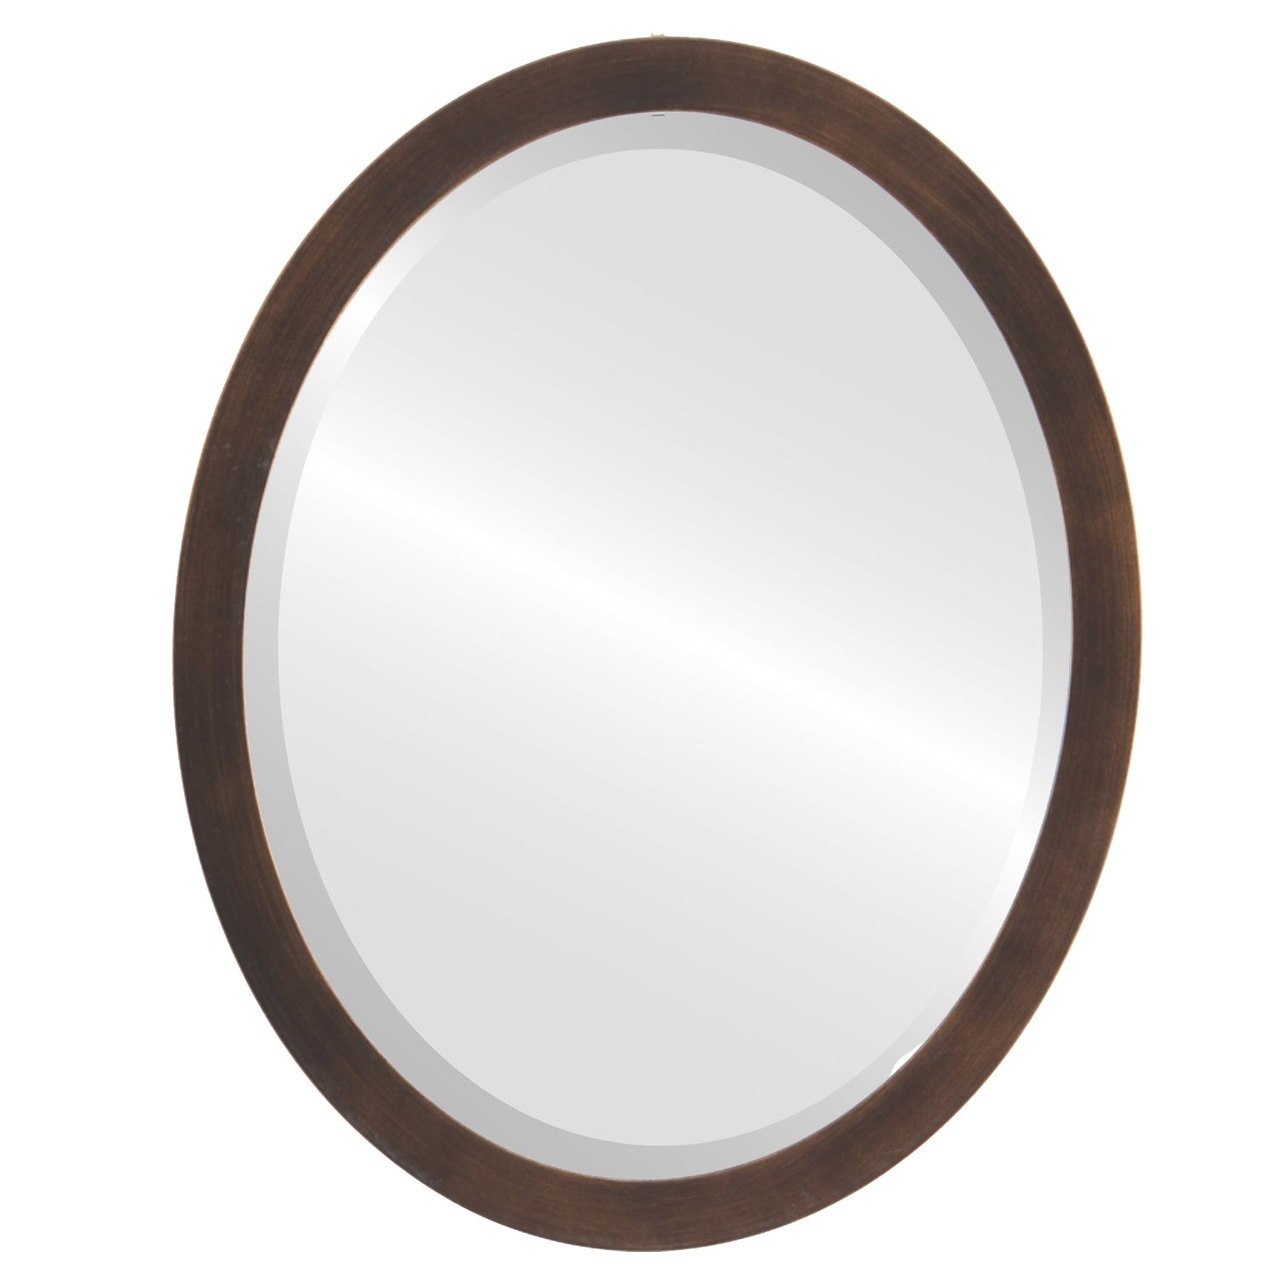 The Oval and Round Mirror Store Manhattan Framed Antique Bronze Oval Mirror by Overstock